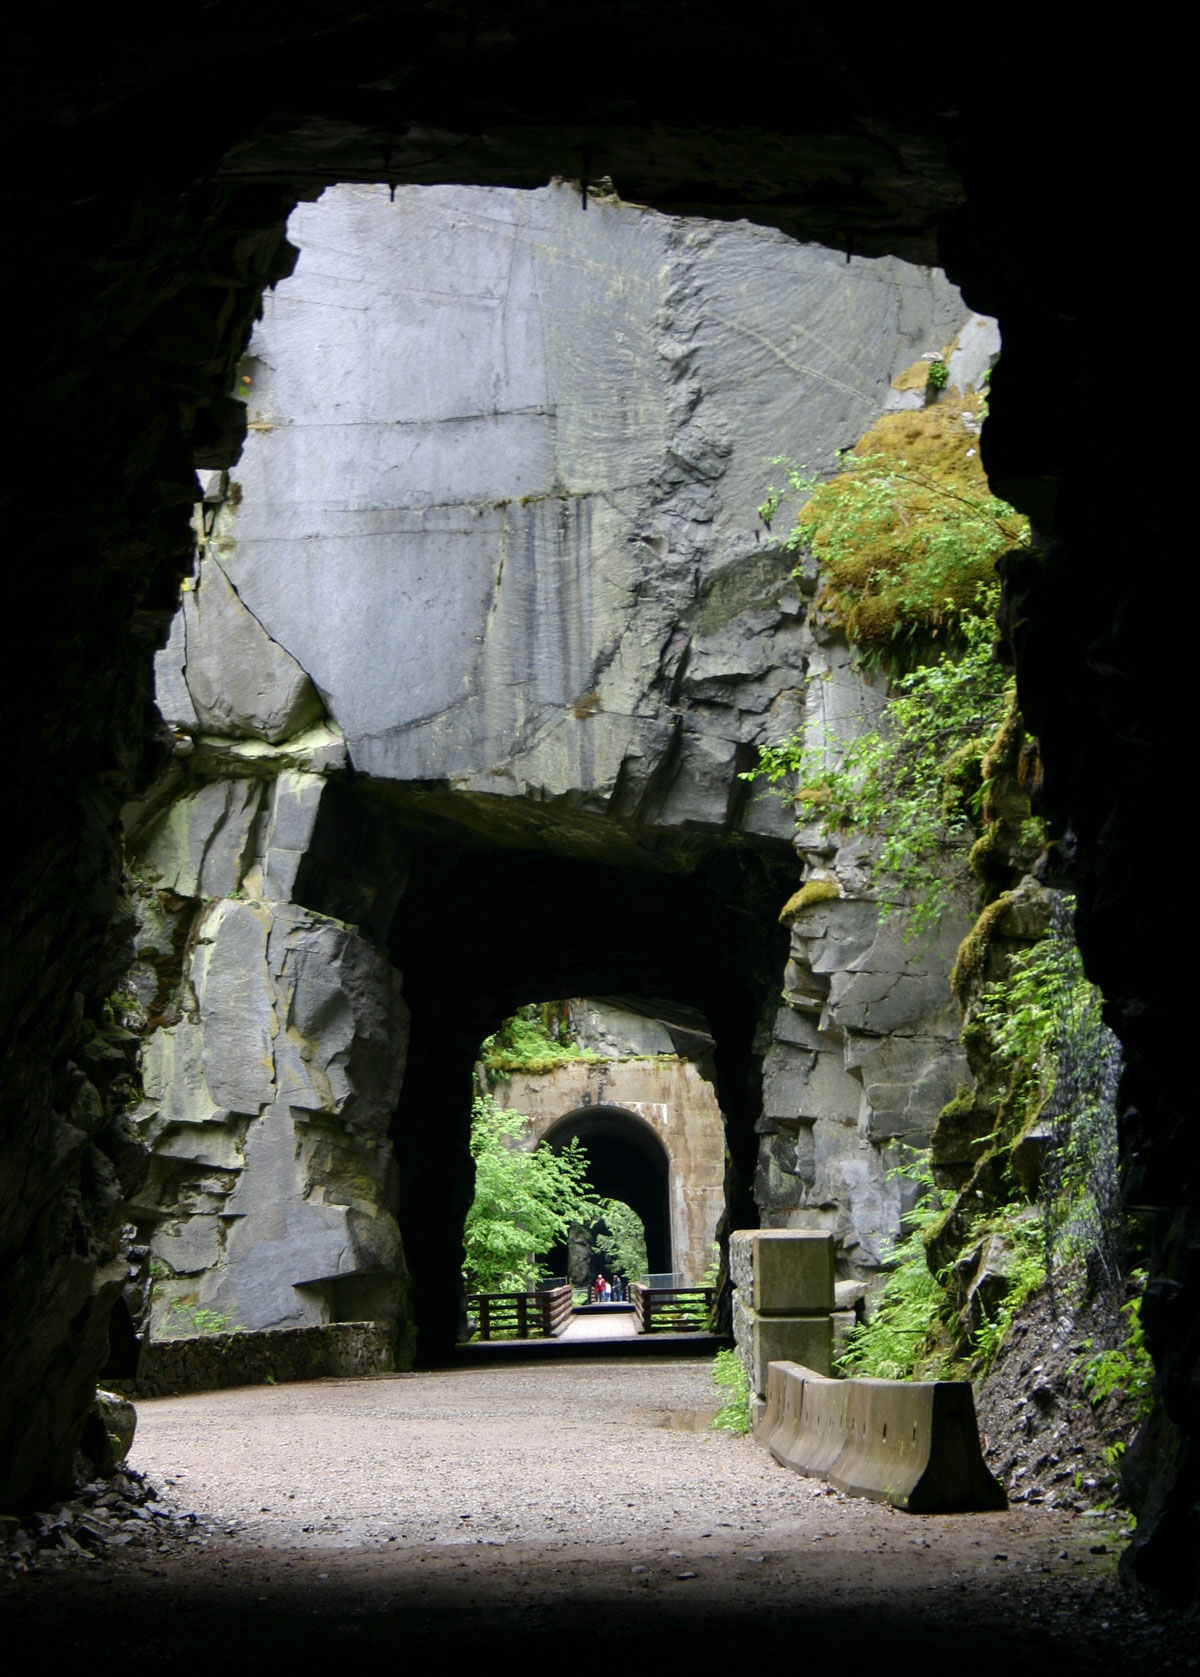 Othello Tunnels, Hope BC